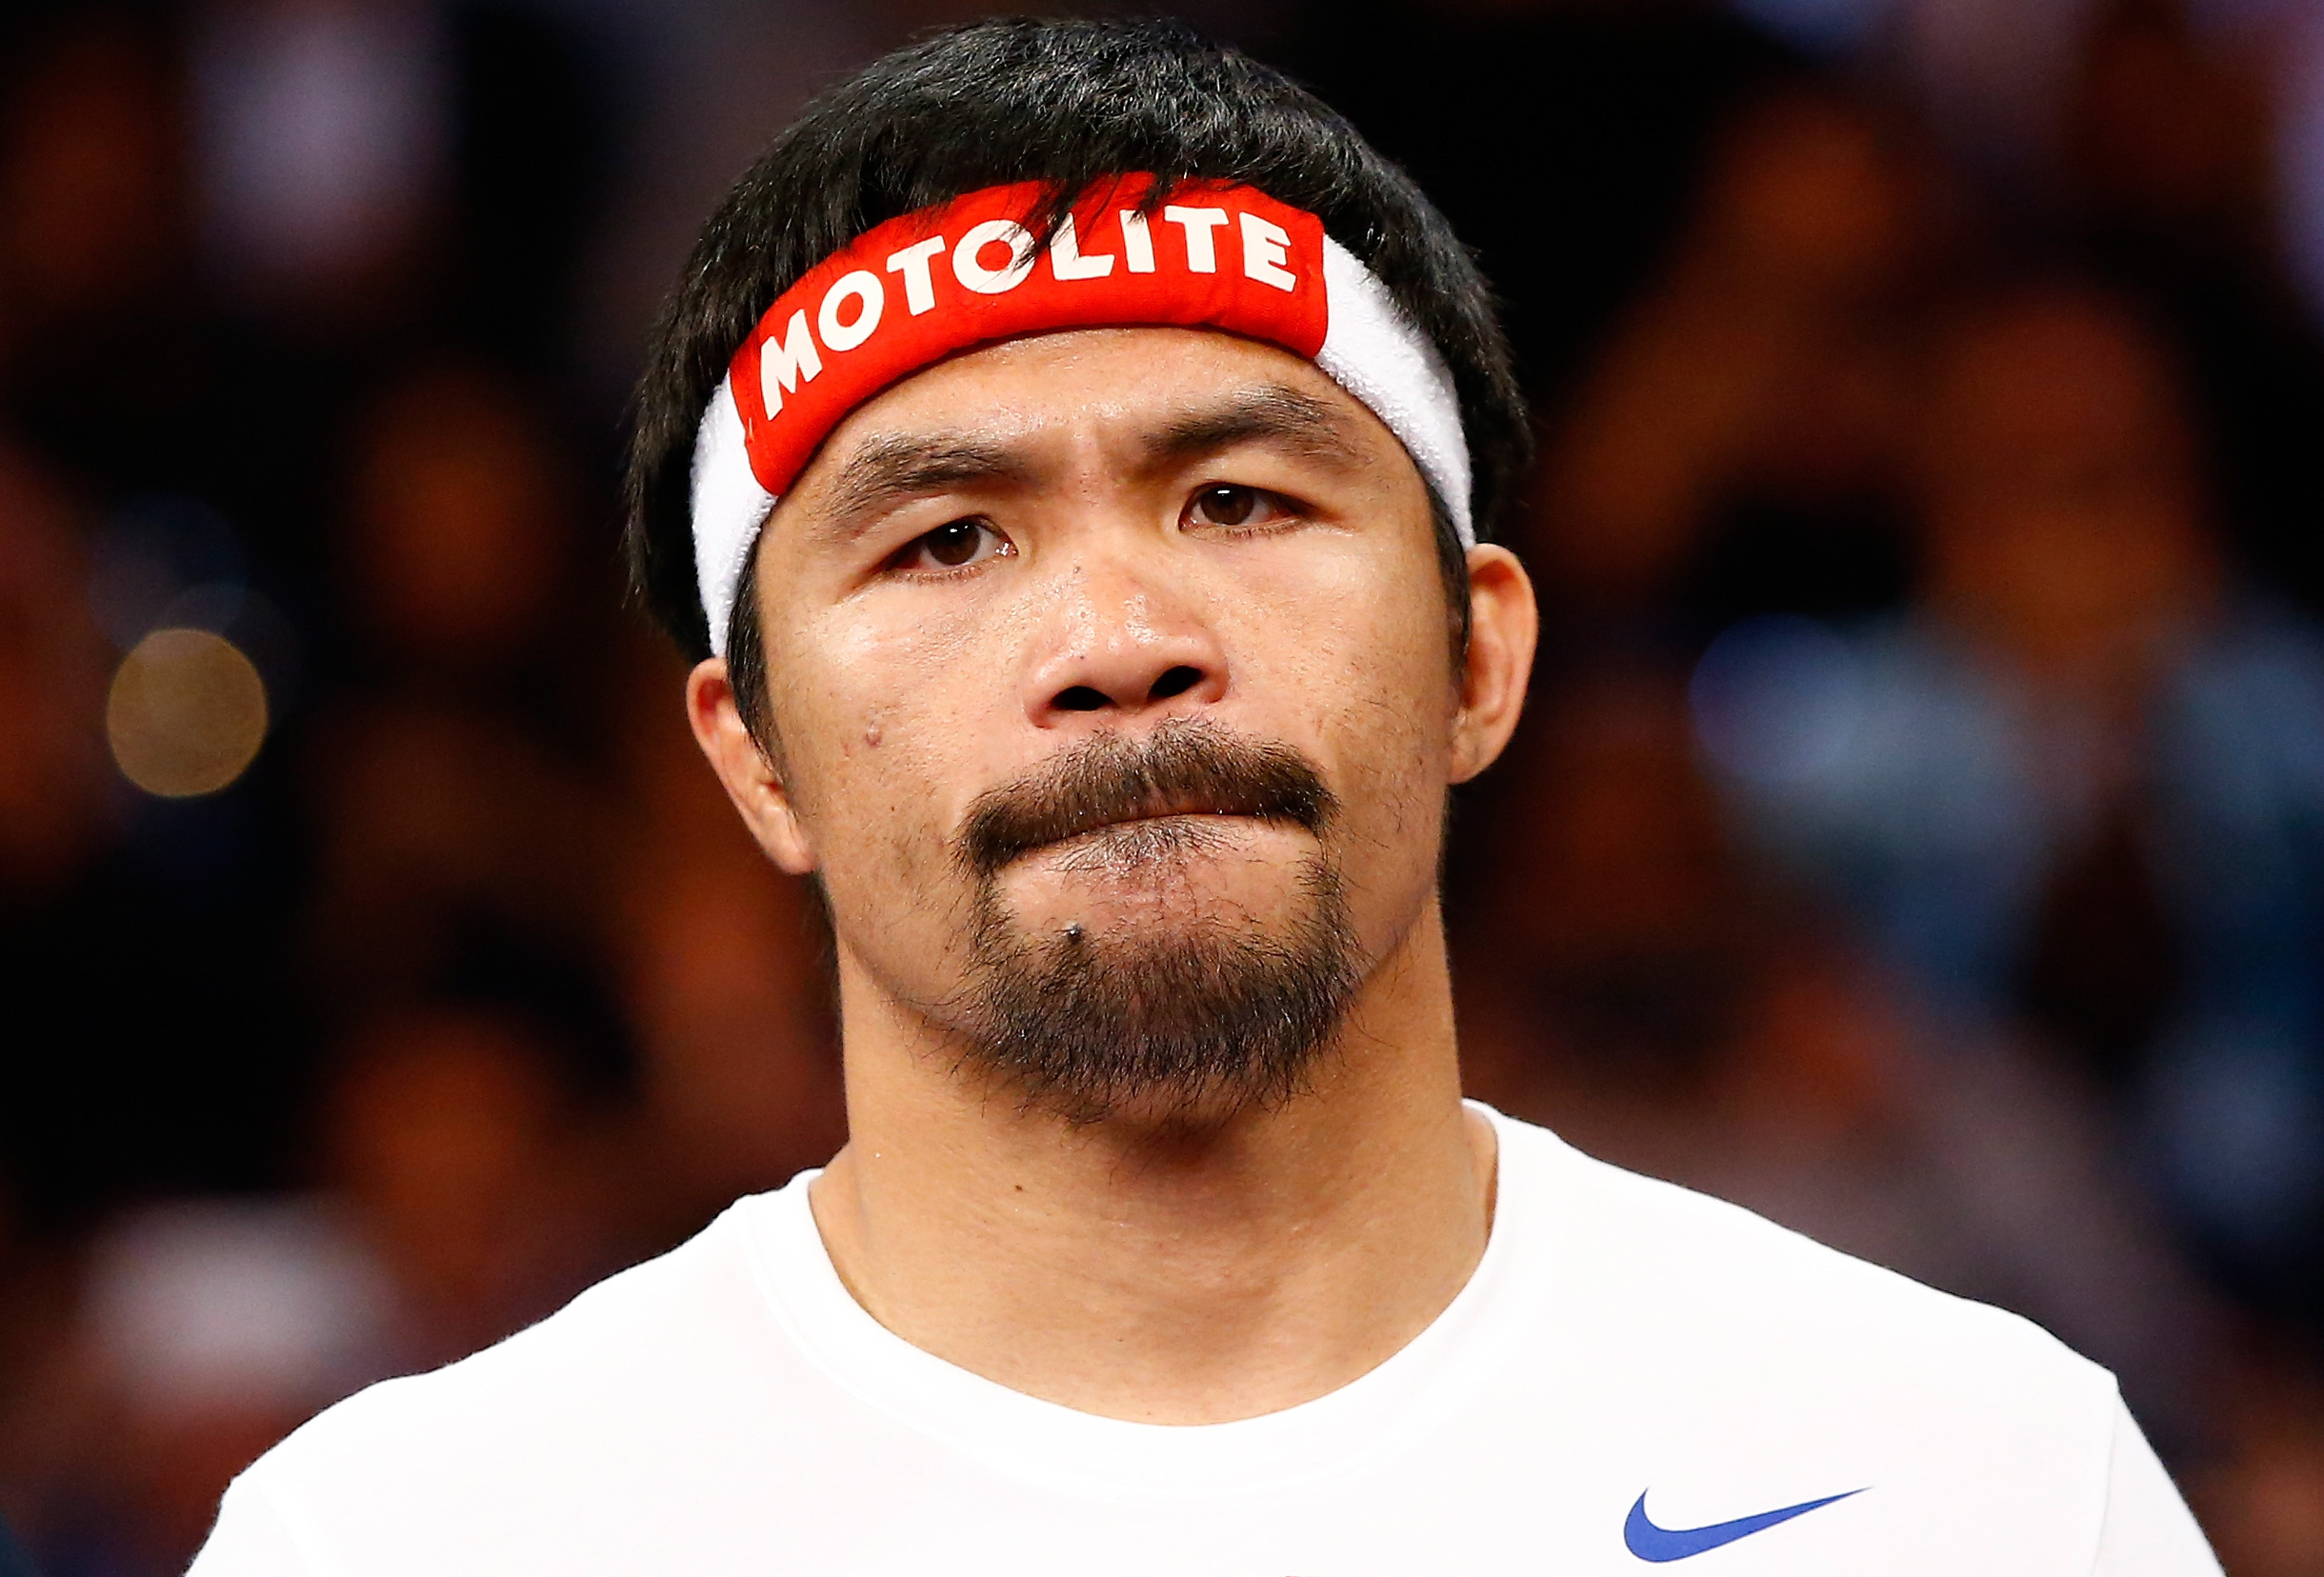 Manny Pacquiao Hot